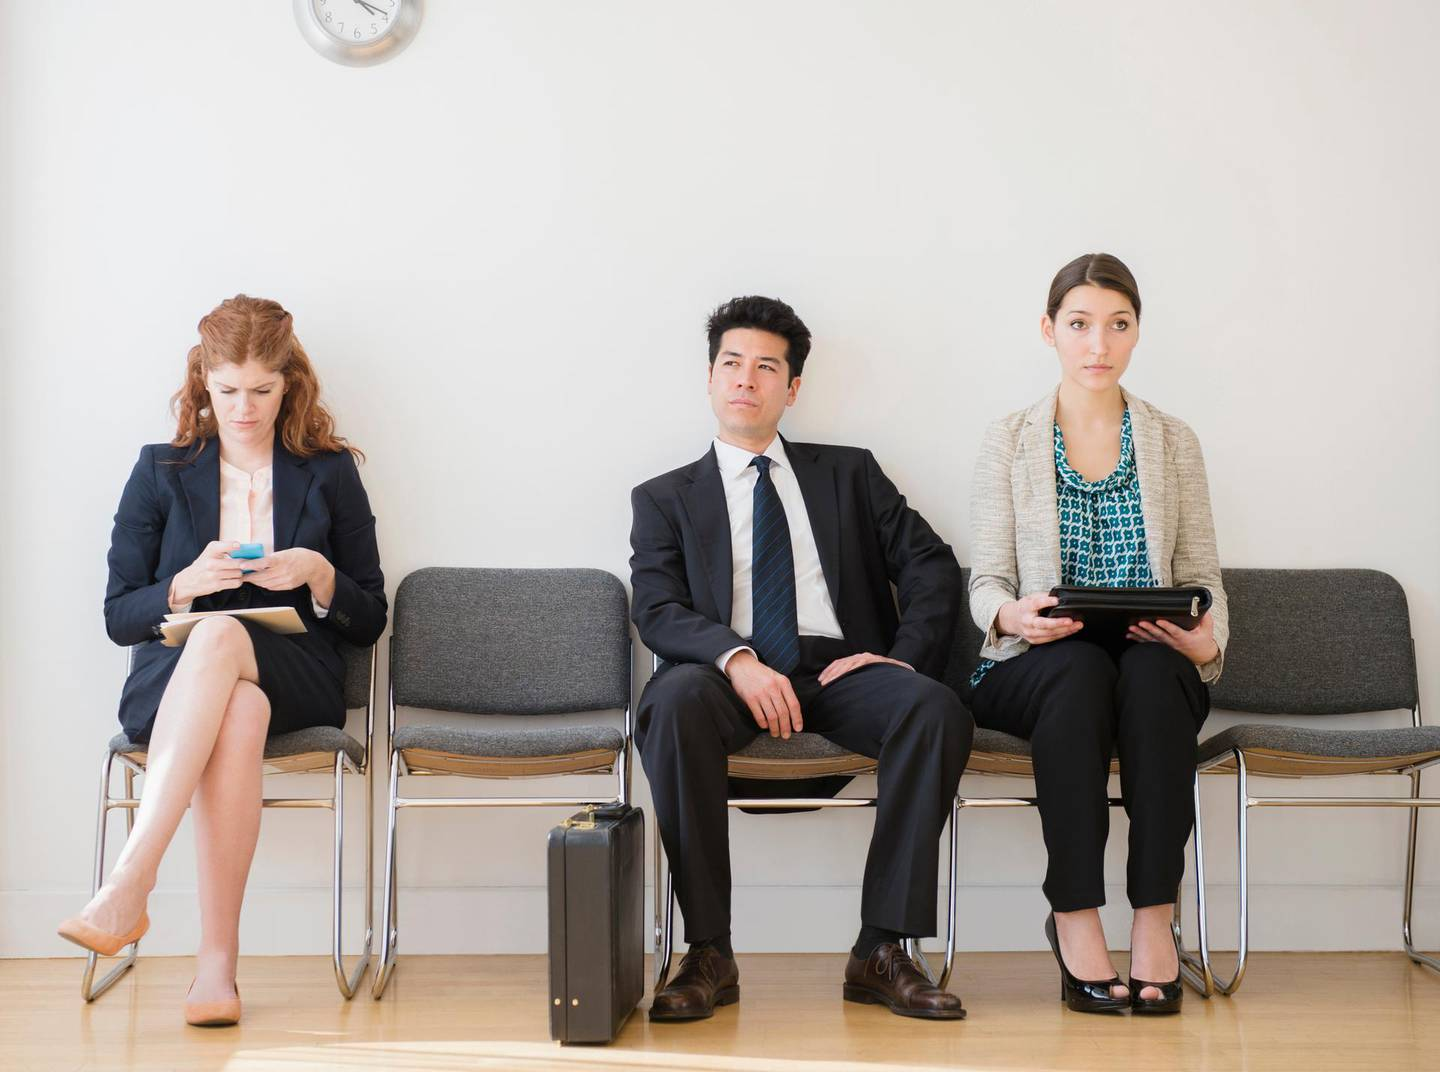 Business people in office waiting room. Getty Images